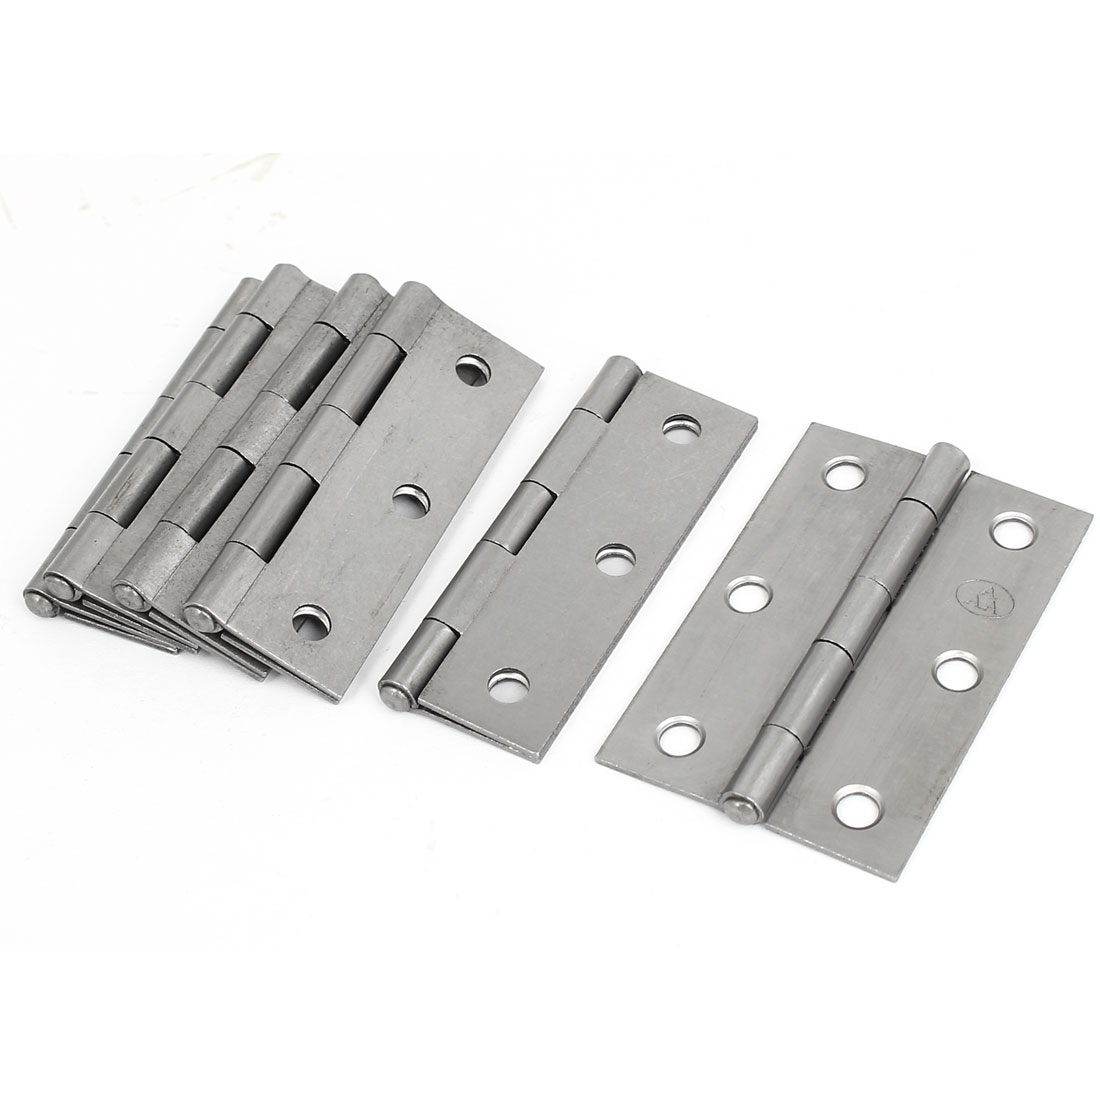 "Cabinet Drawer Foldable Iron Door Butt Hinge Silver Gray 3"" Length 6pcs"